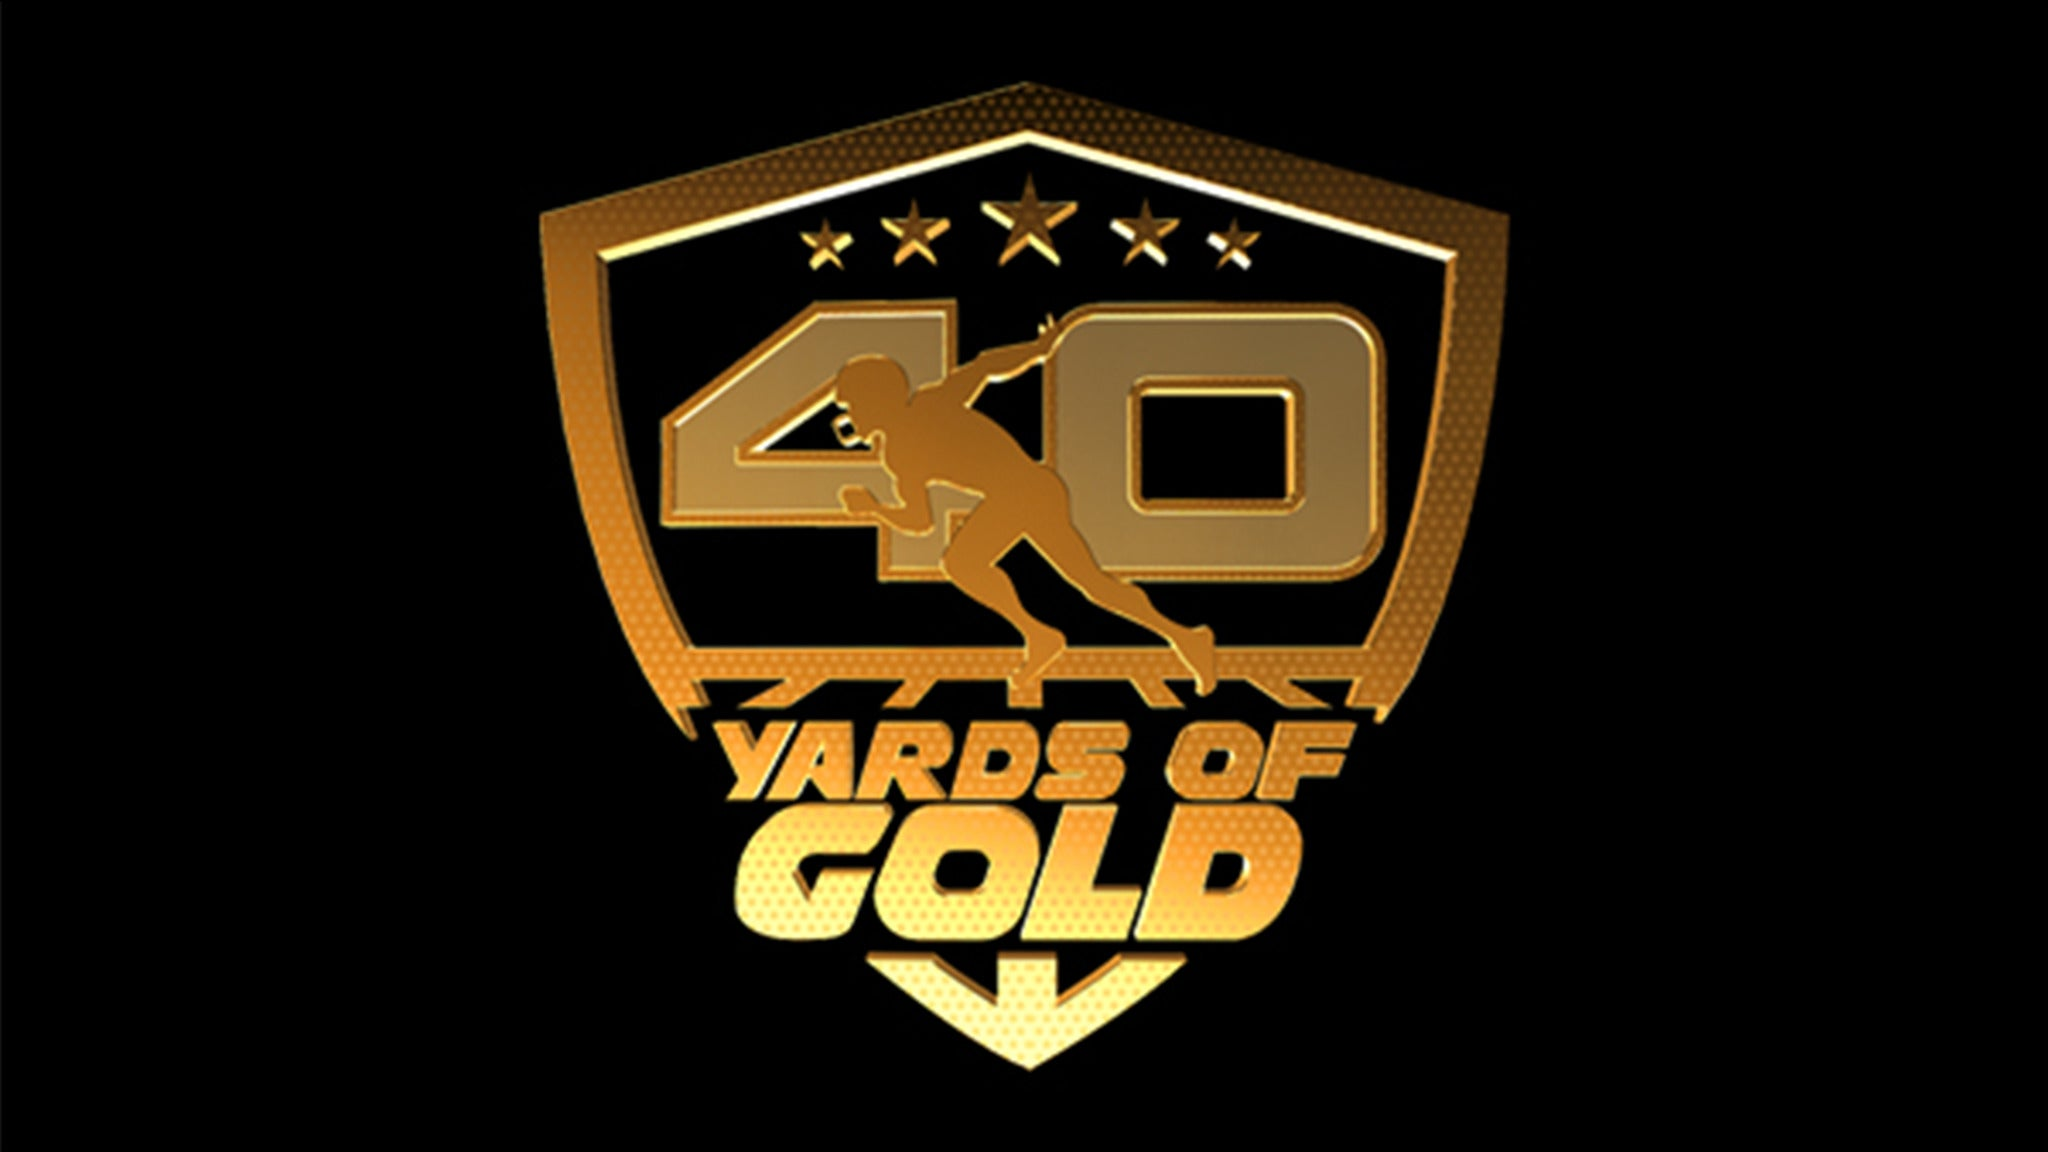 40 YARDS OF GOLD ALL-STAR SPEED TOURNAMENT at BB&T Center